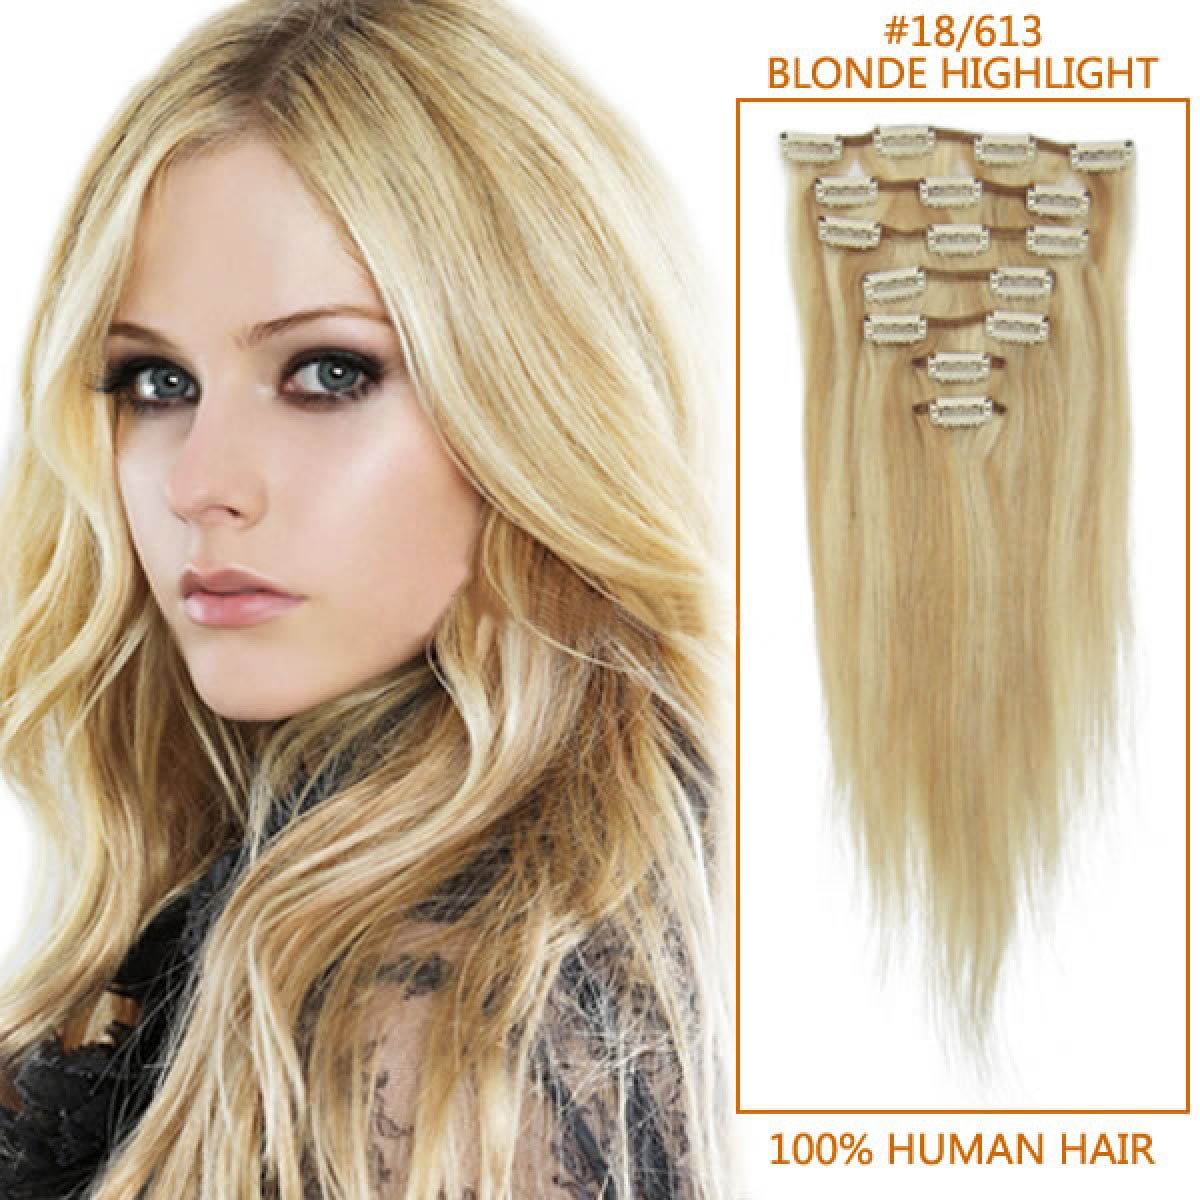 Inch 18613 blonde highlight clip in human hair extensions 10pcs 24 inch 18613 blonde highlight clip in human hair extensions 10pcs pmusecretfo Image collections